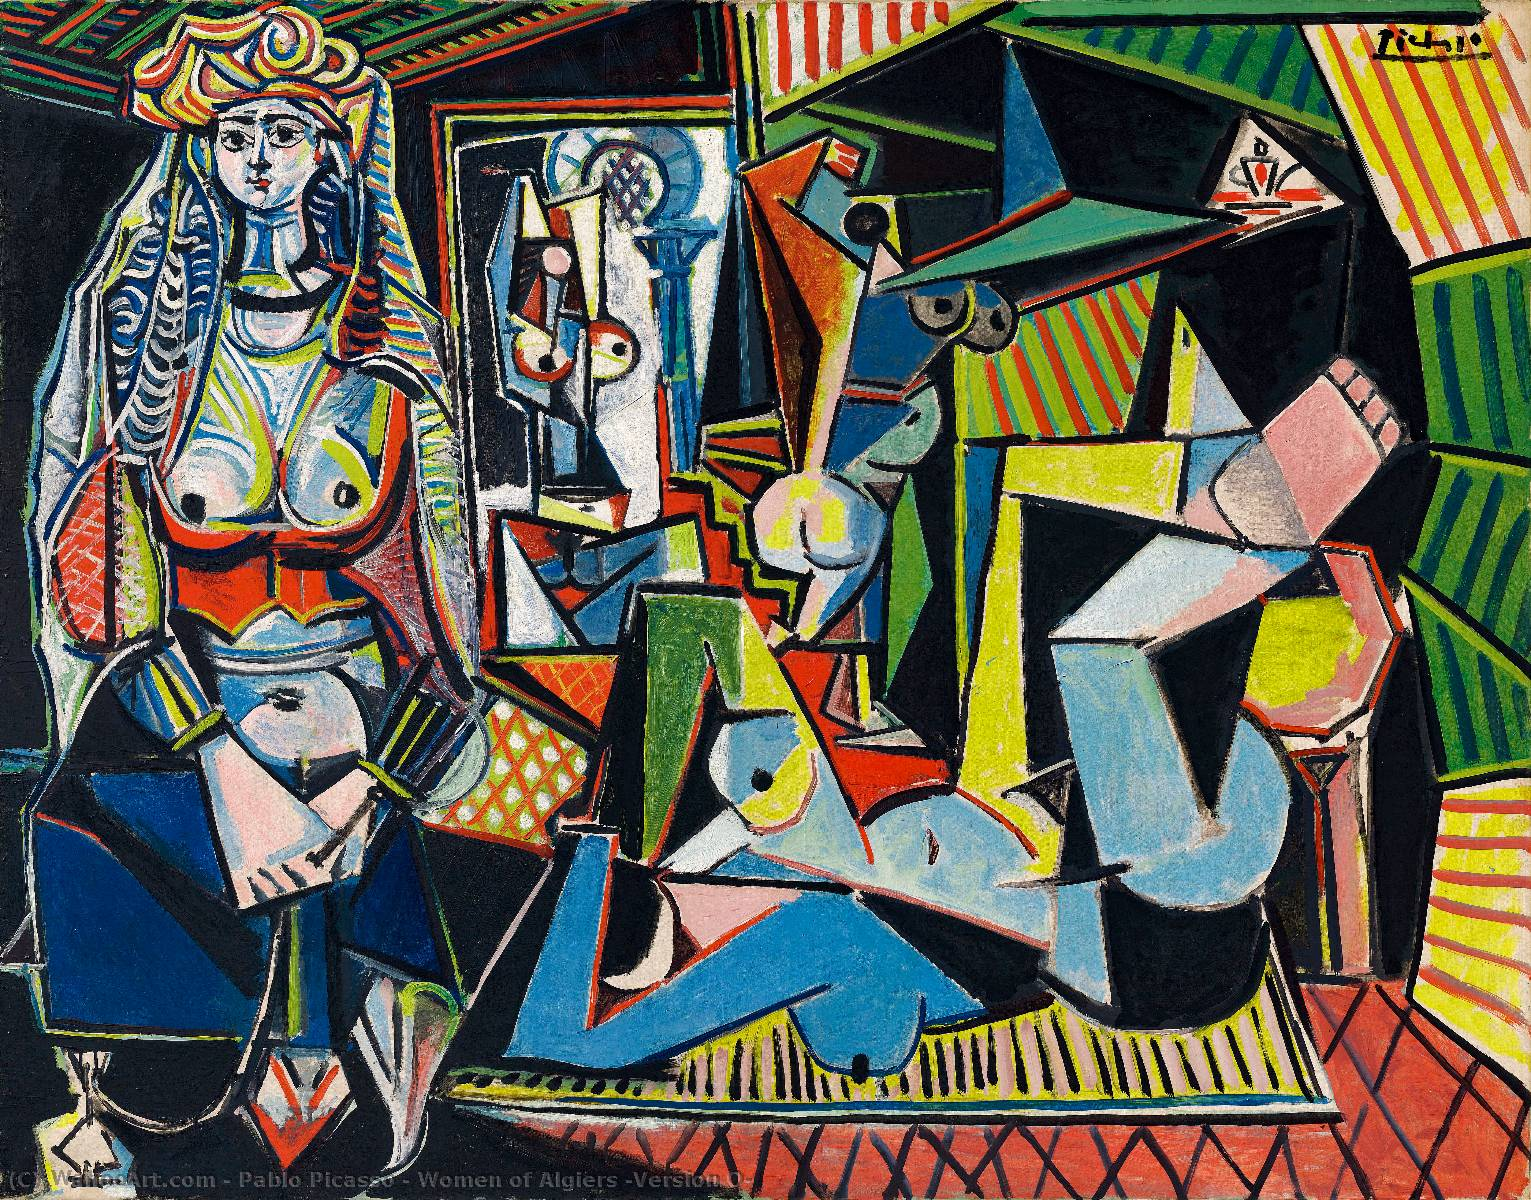 | Women of Algiers (Version O) by Pablo Picasso | Most-Famous-Paintings.com